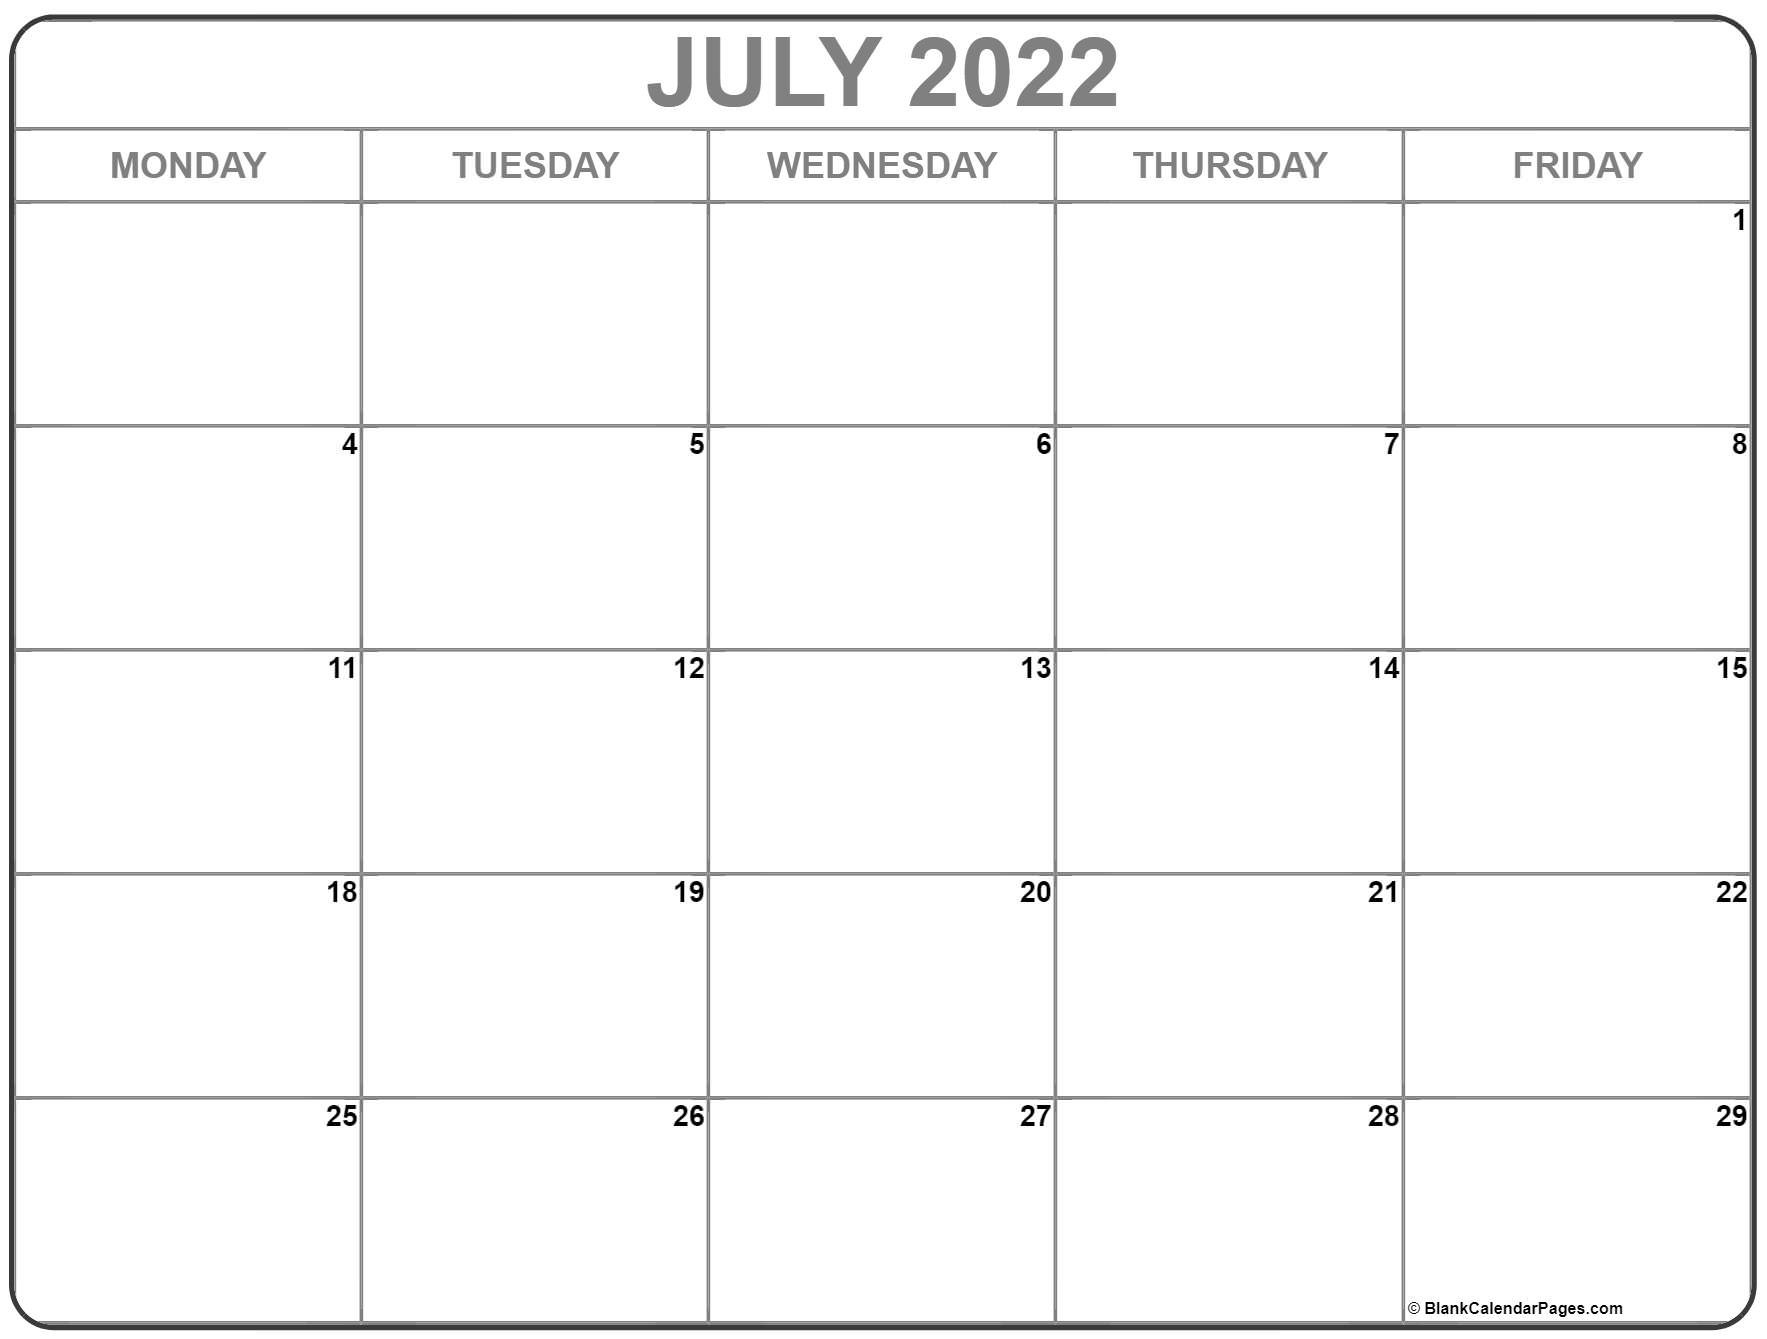 July 2022 Monday Calendar | Monday To Sunday July Calendar With Monday Through Friday Only